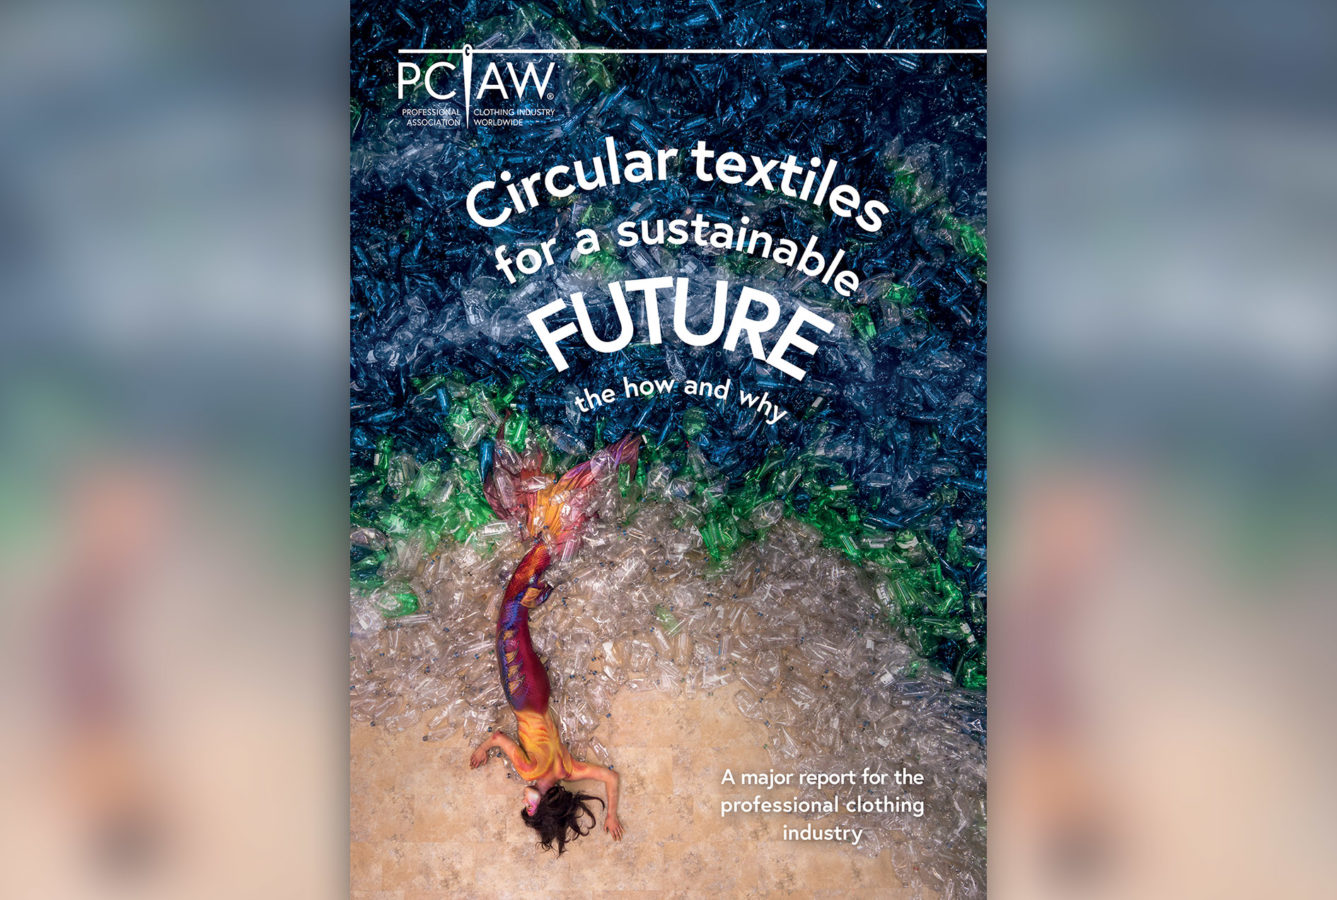 The PCIAW® is launching the first of its kind report, 'Circular Textiles for a Sustainable Future,' in an exclusive free webinar on Tuesday 15th June 2021 at 14.00 BST.